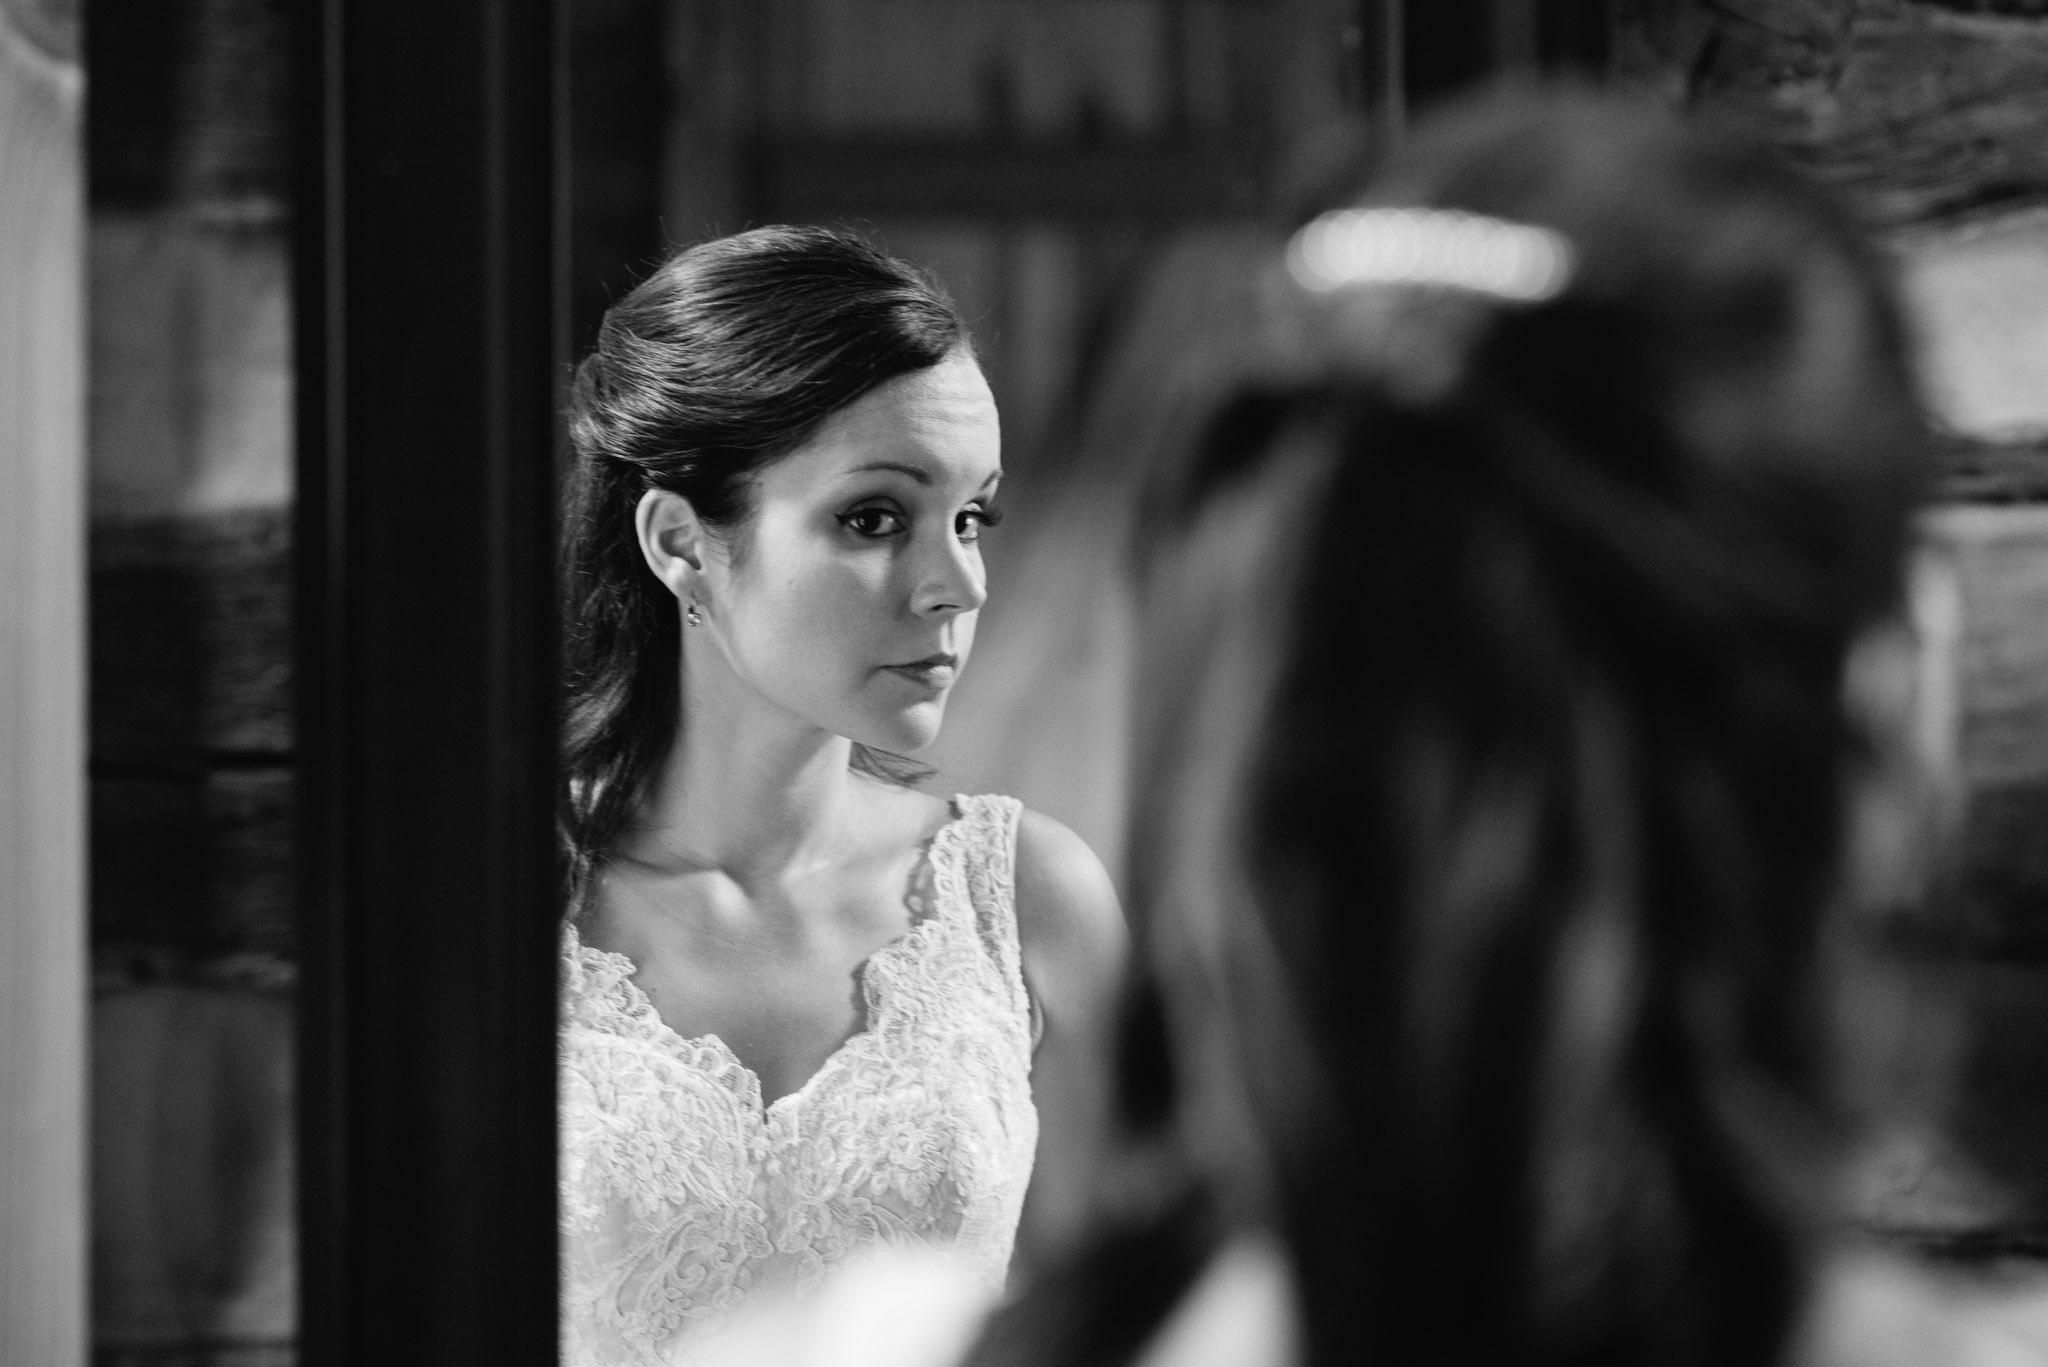 Bride getting ready, The Event Barn at Highland Farms, Somerset PA-9356.jpg